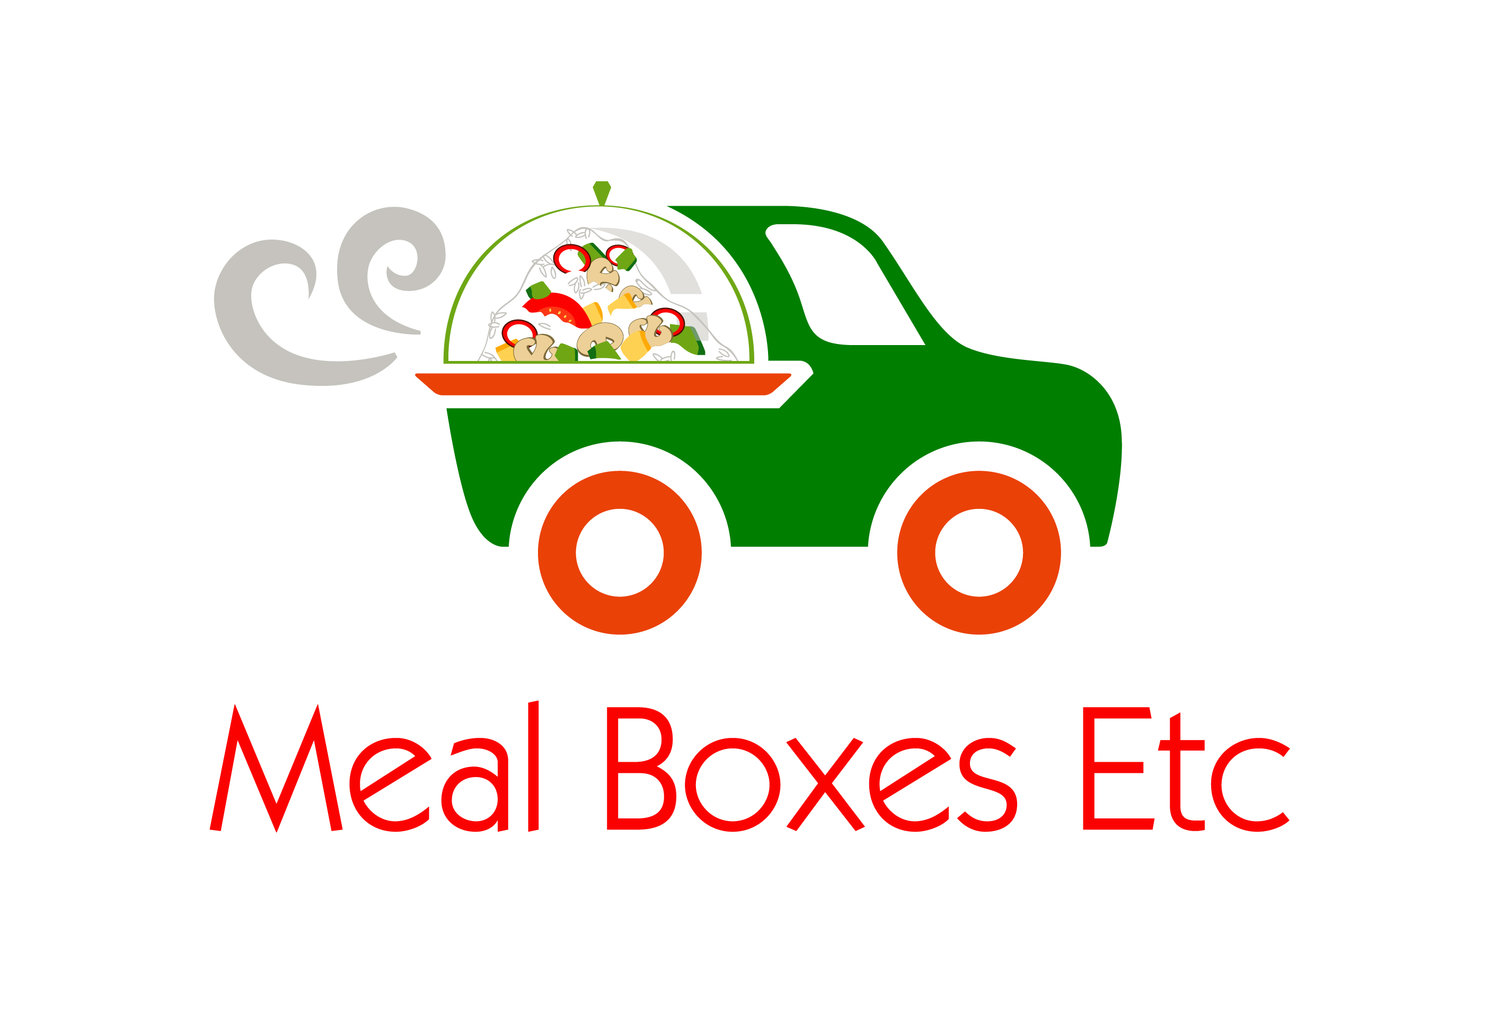 Weekly Food Delivery Meal Boxes Etc